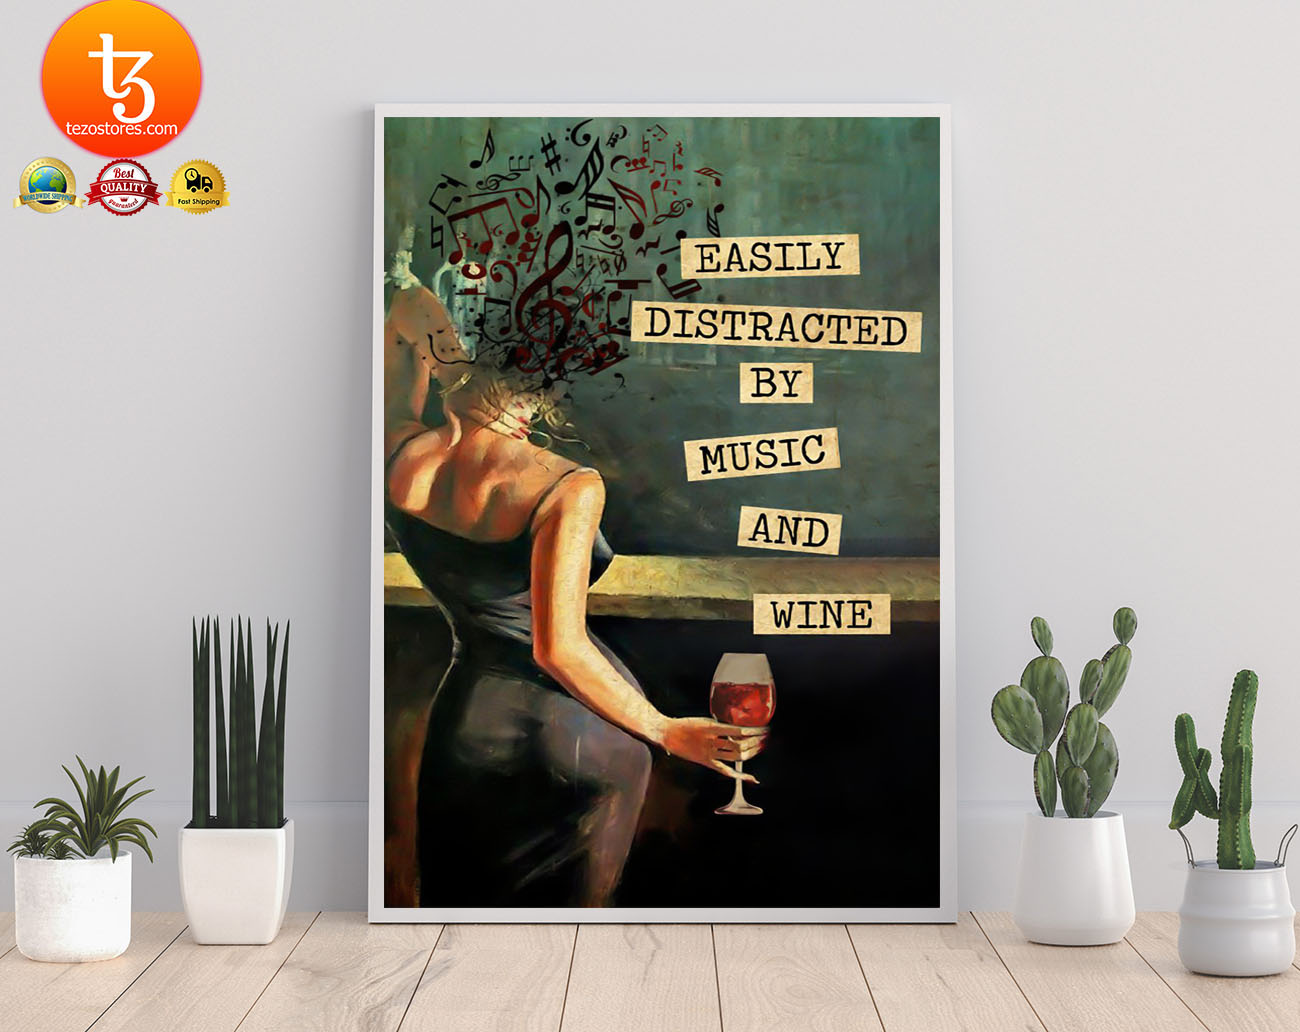 Girl vintage easily distracted by music and wine poster 11